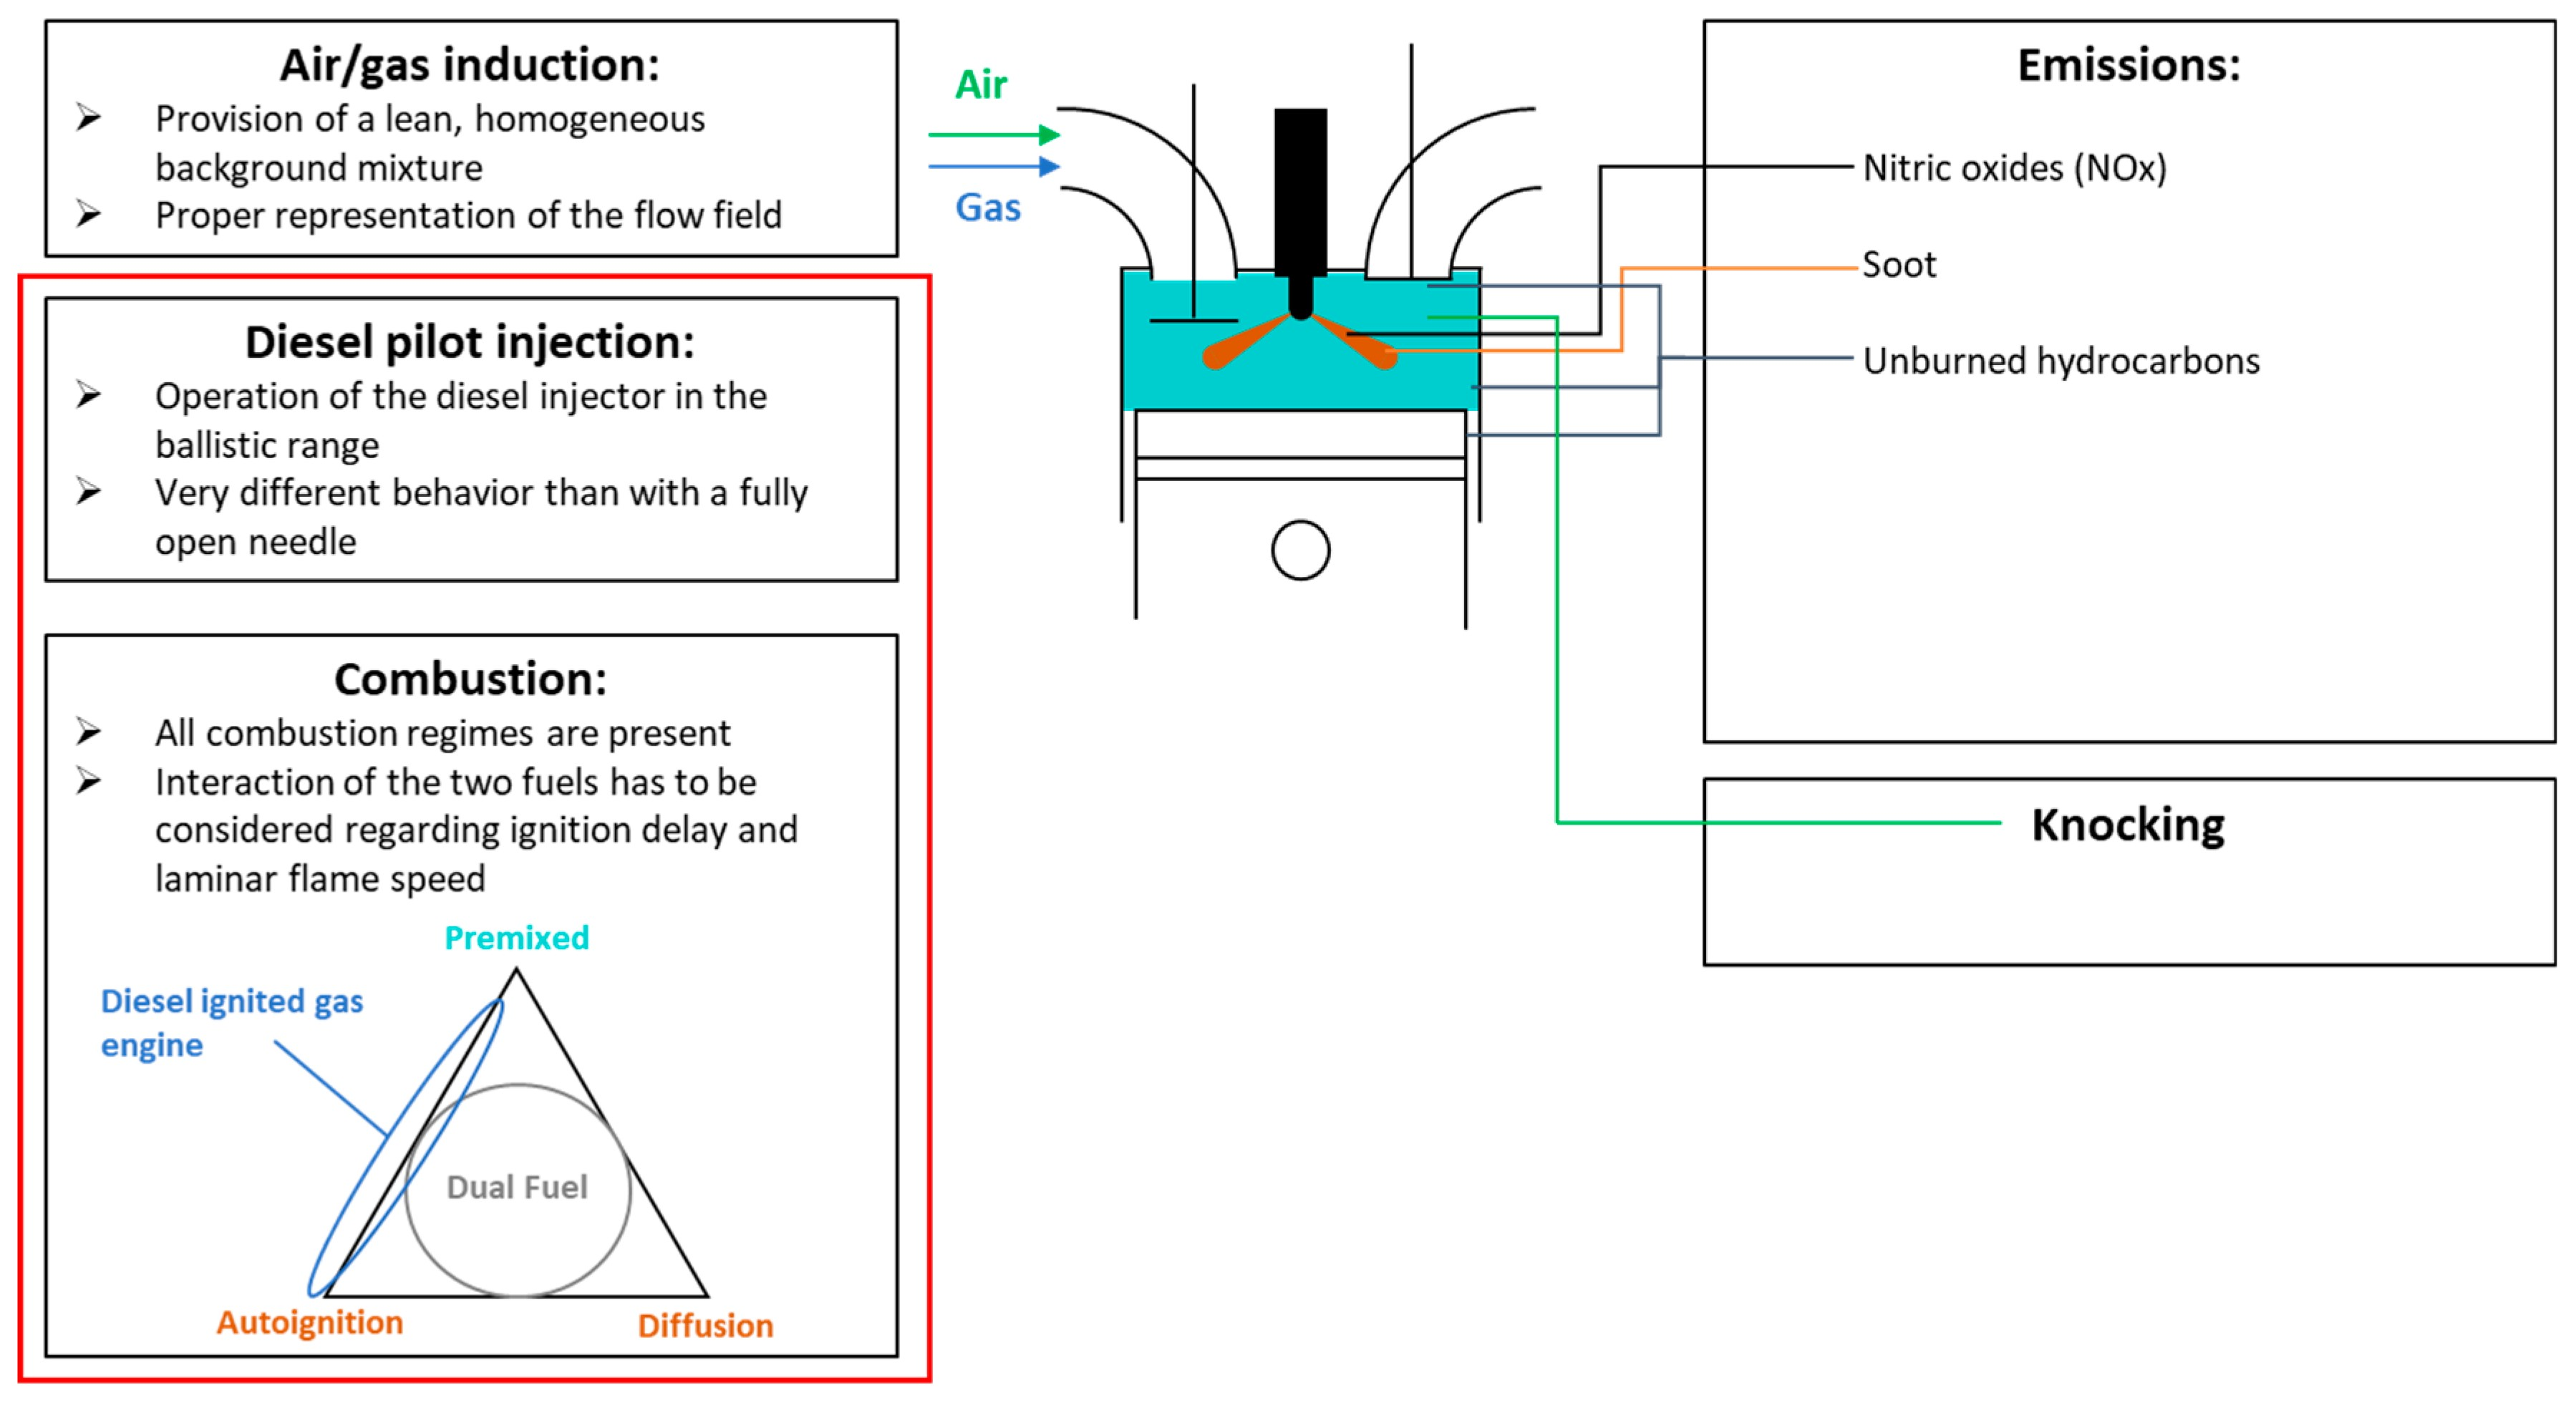 Diesel Engine Valve Timing Diagram Energies Free Full Text Of Diesel Engine Valve Timing Diagram How to Replace Timing Belt Hyundai Santa Fe 2 0d Crdi 2002